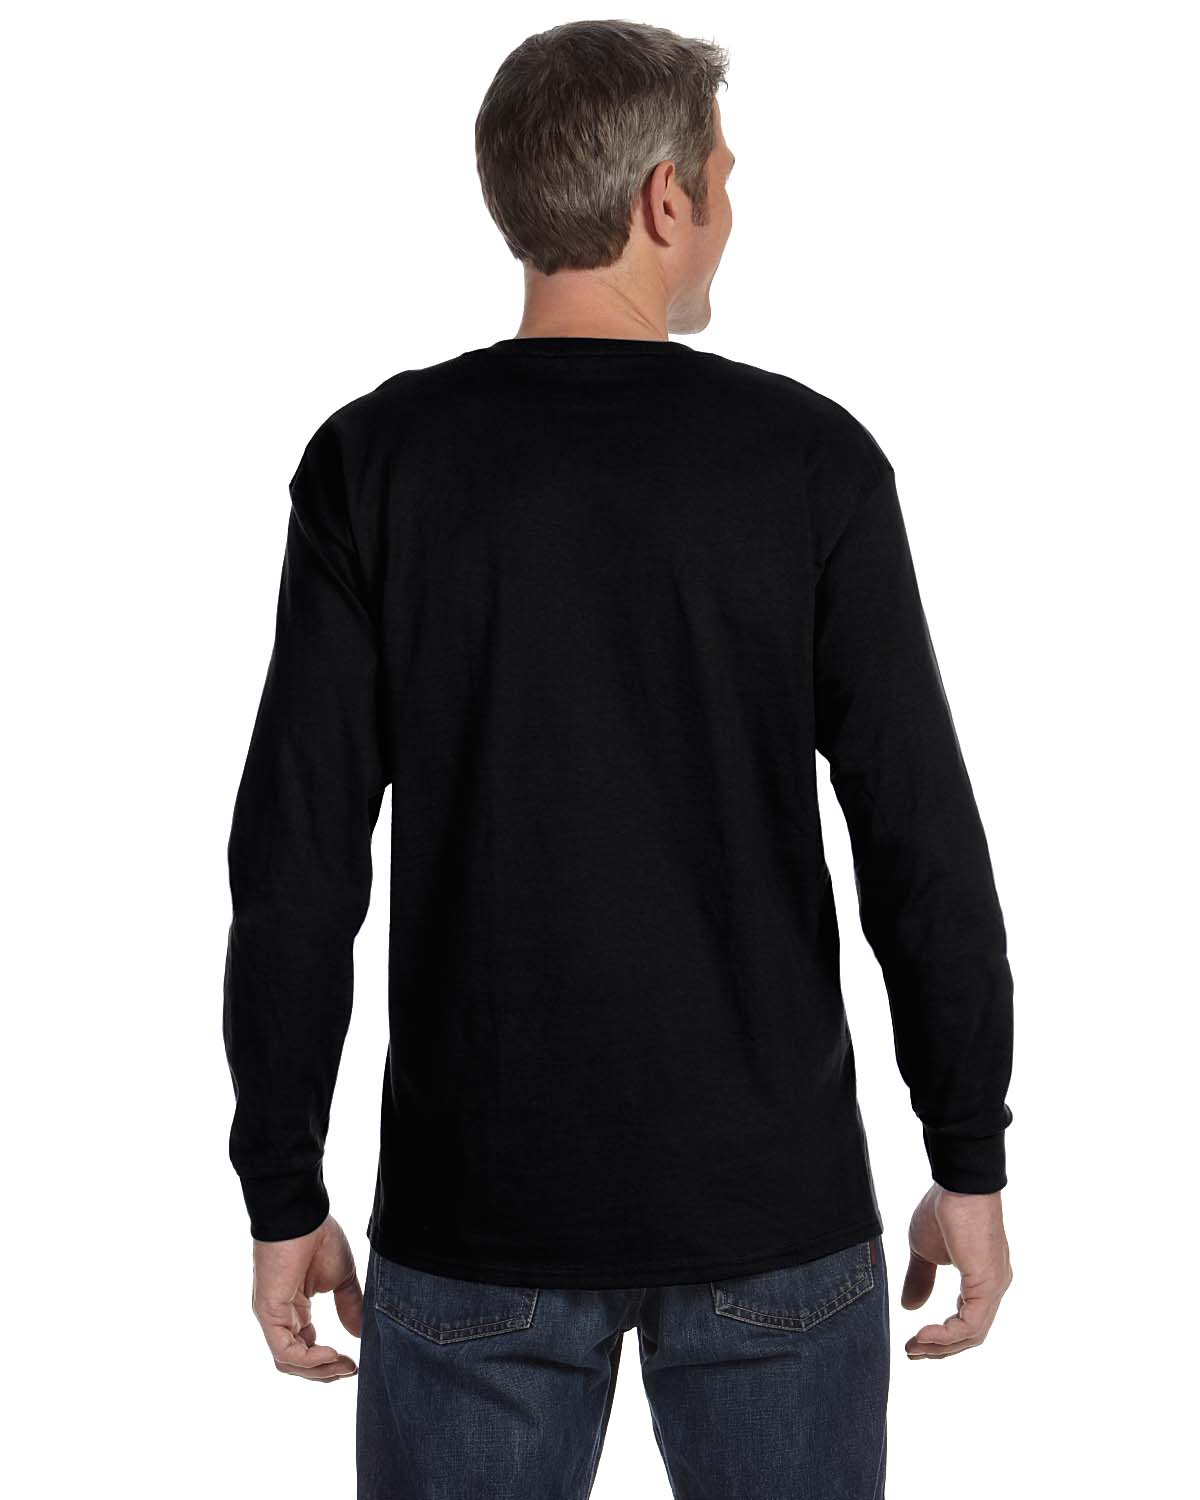 Gildan-Mens-T-Shirt-Long-Sleeve-Heavy-Cotton-5-3-oz-S-XL-R-G540-5400 thumbnail 8